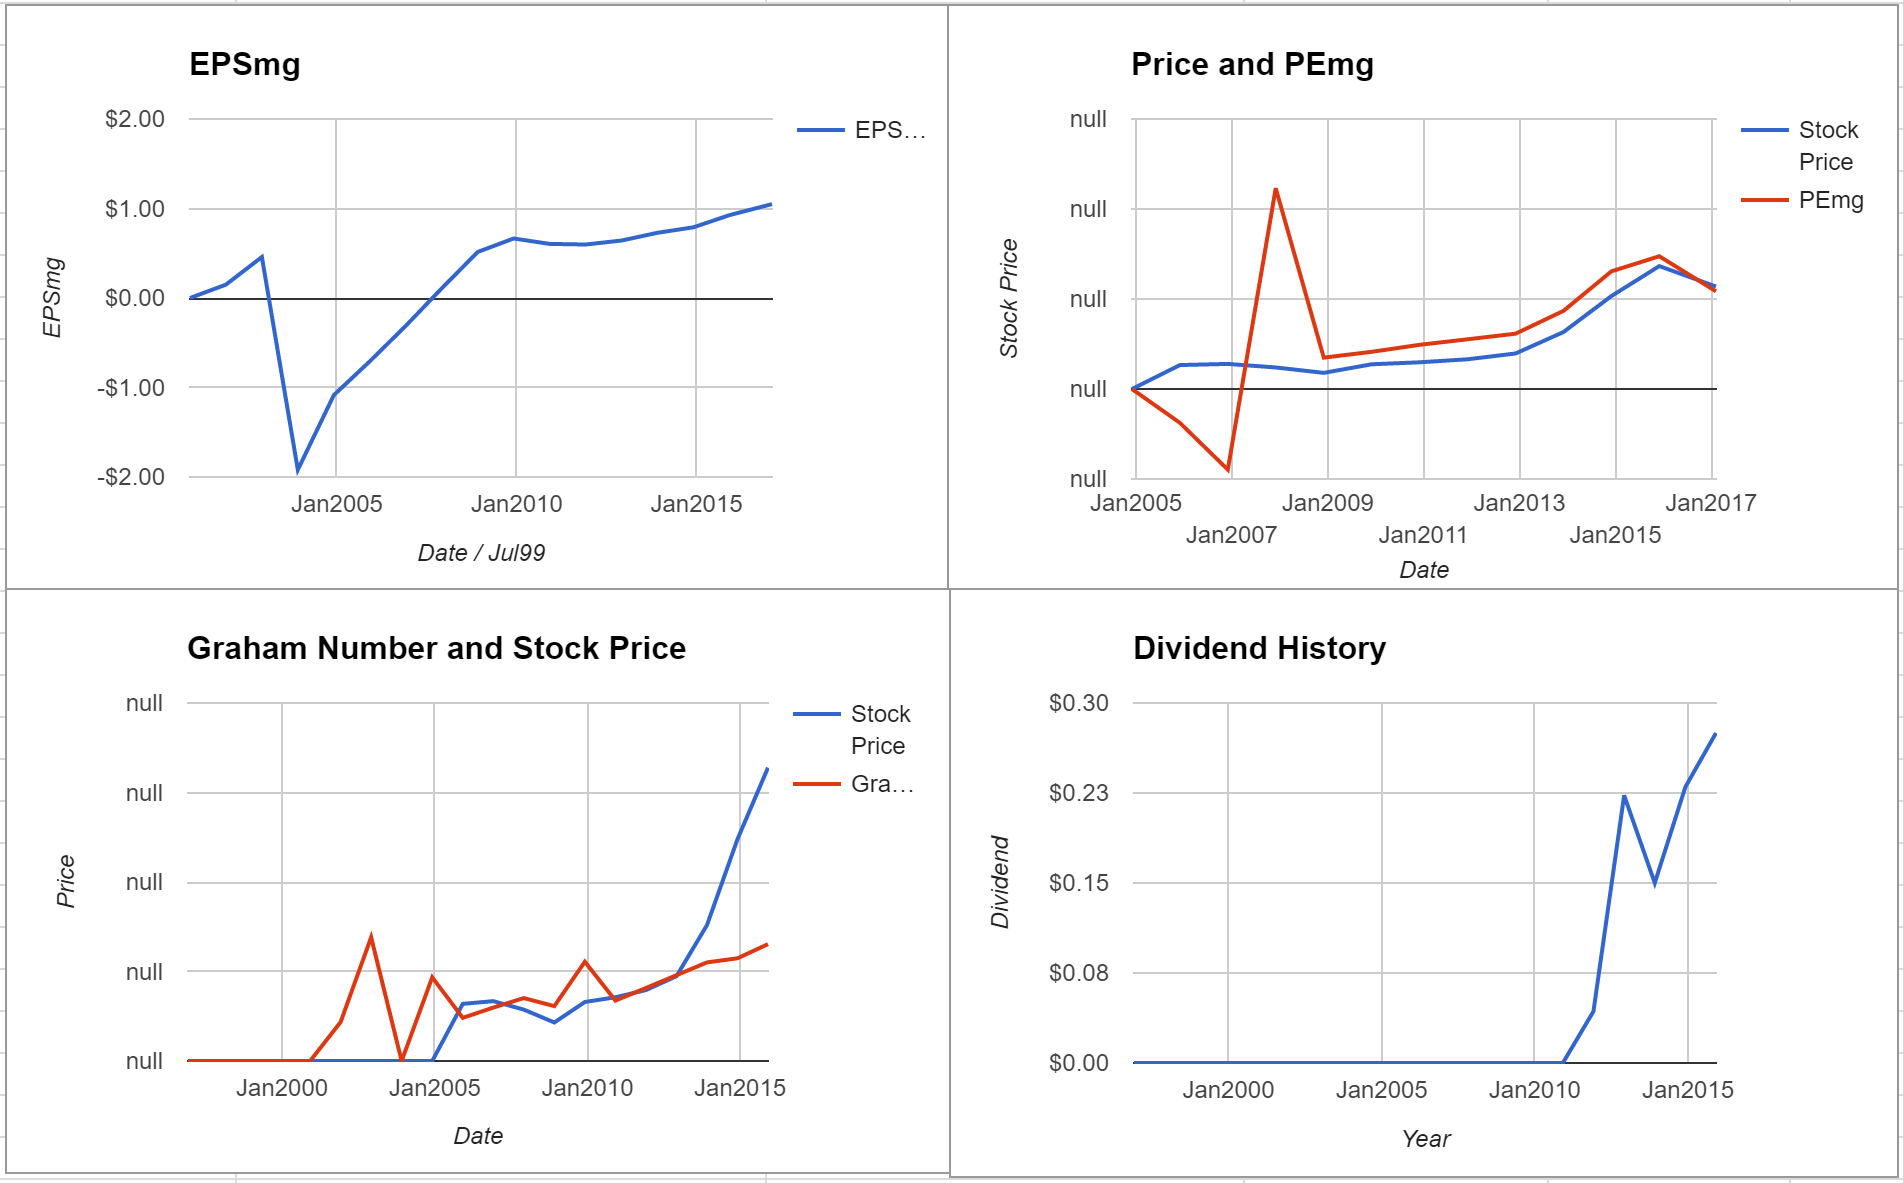 Core-Mark Holding Company Inc Valuation – Initial Coverage $CORE